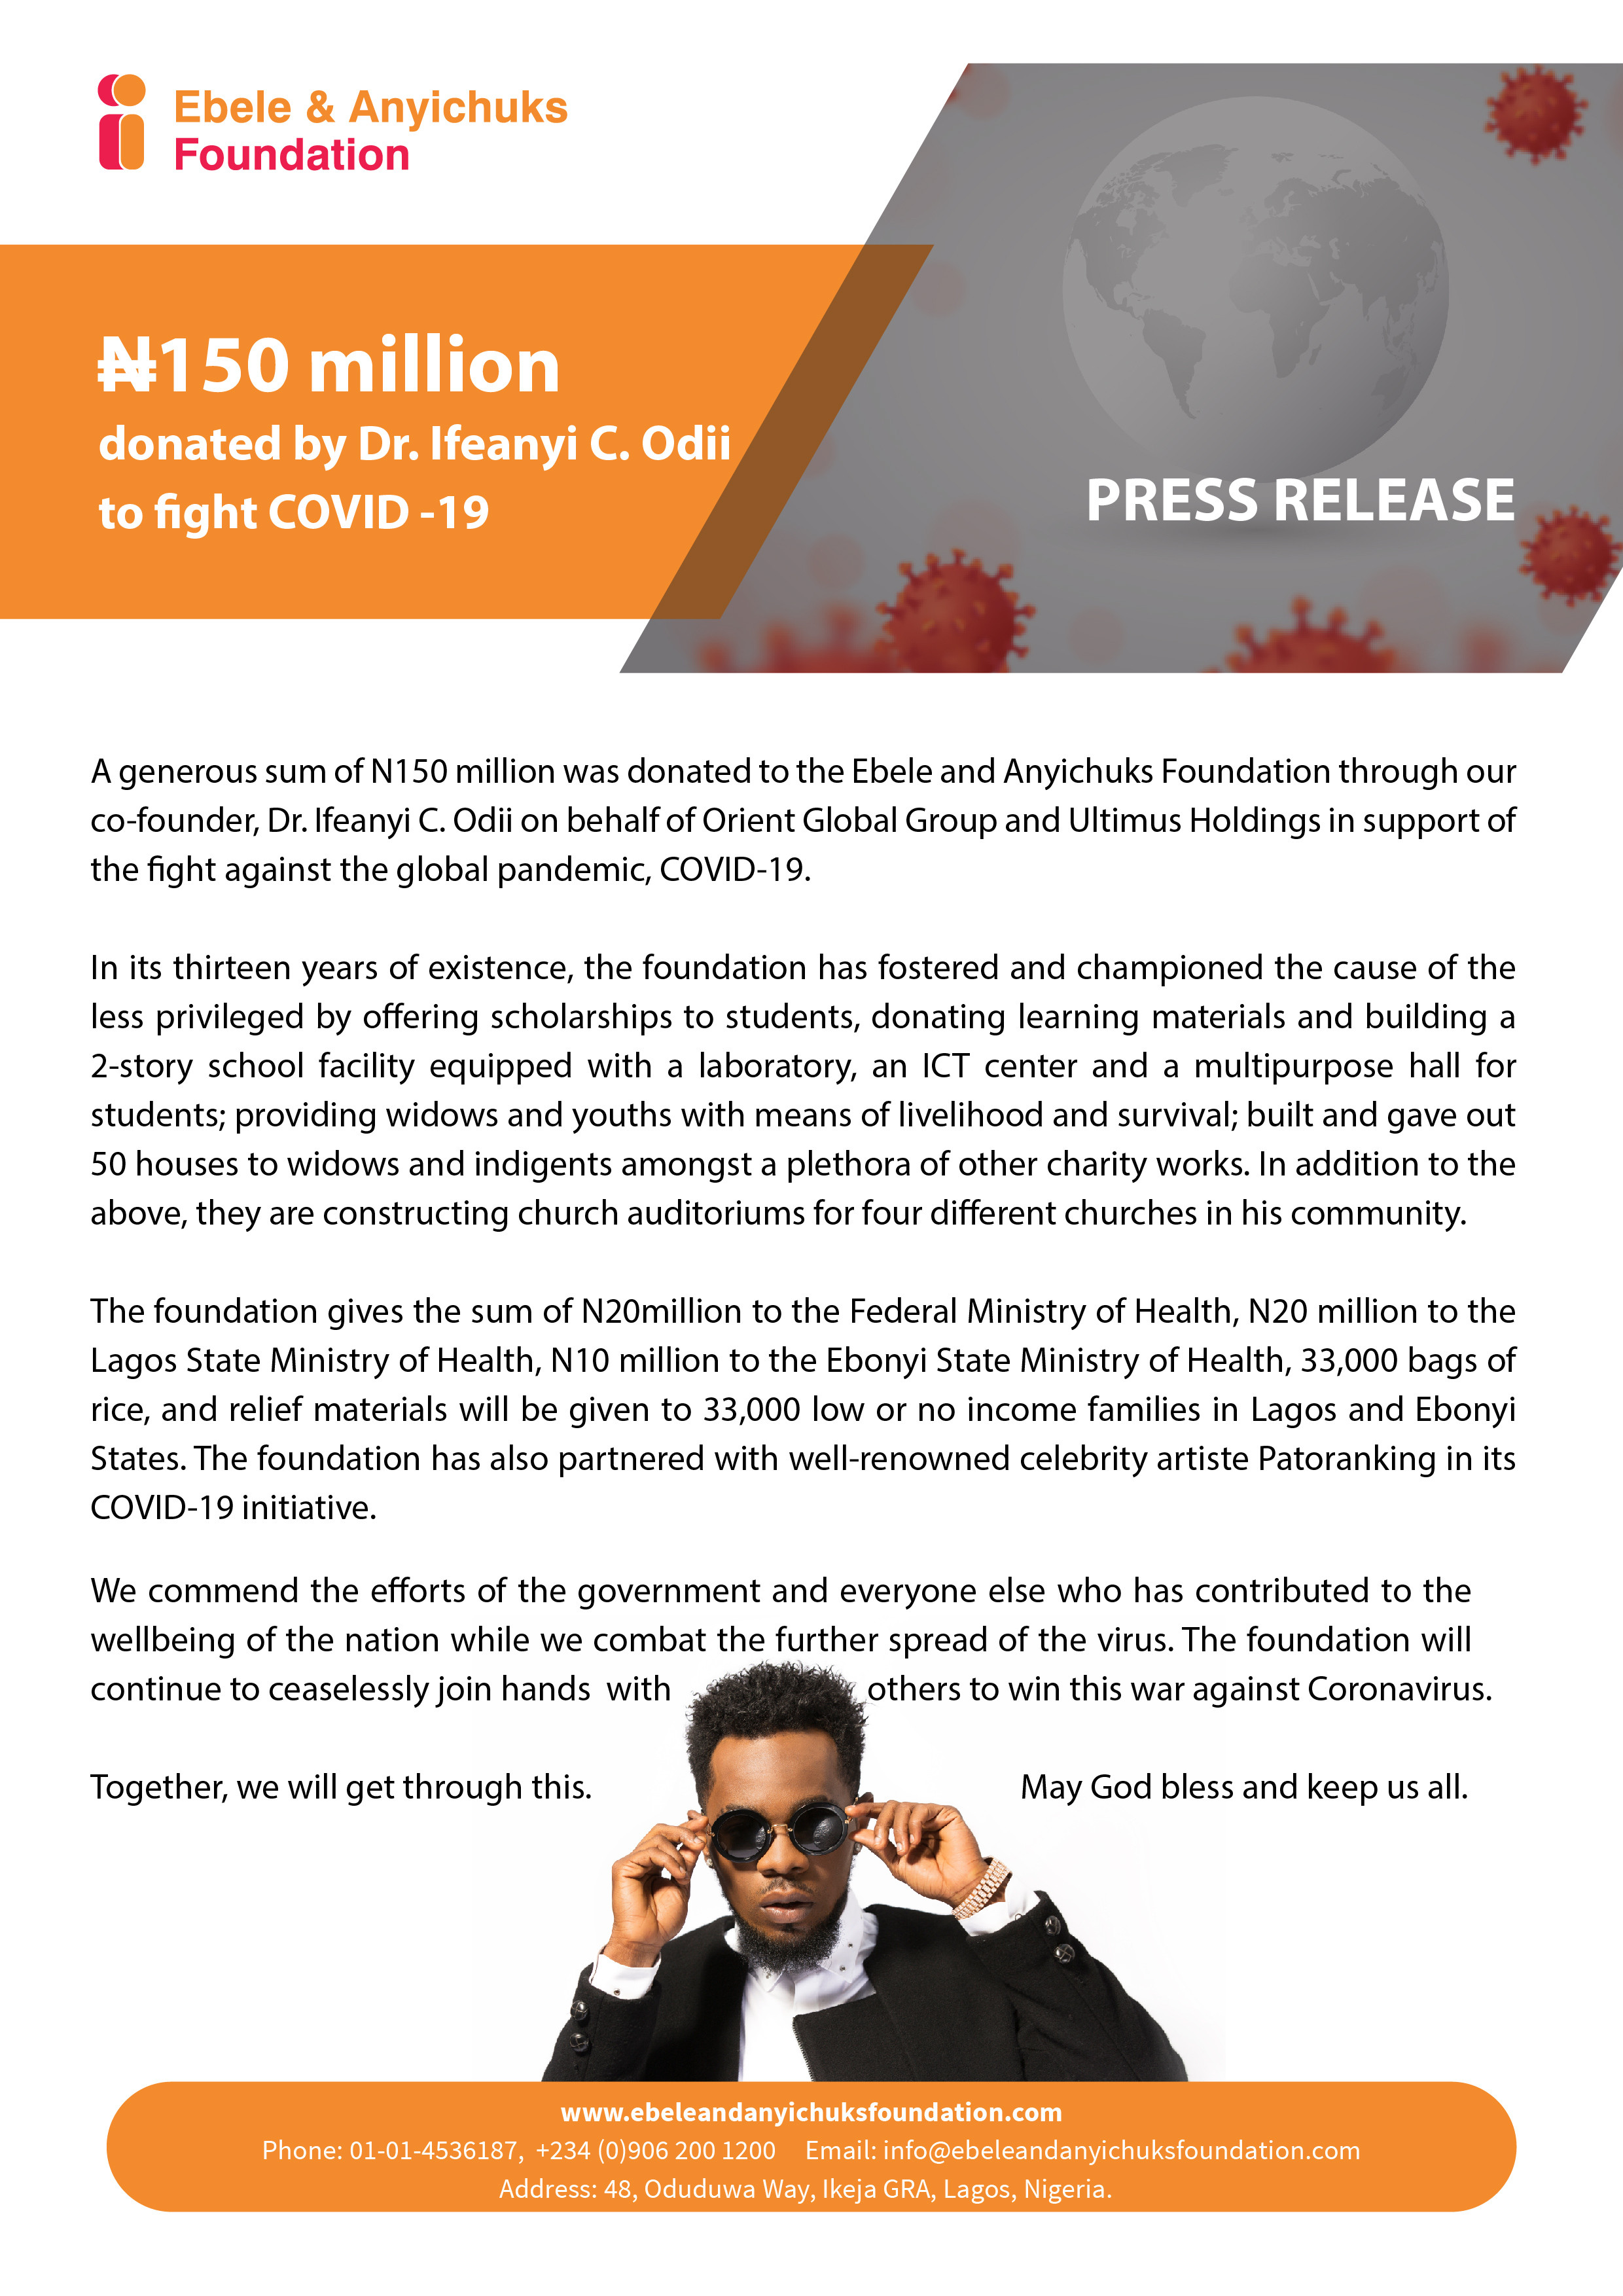 Ebele And Anyichuks Foundation Partners with Patoranking in its COVID-19 initiative lindaikejisblog